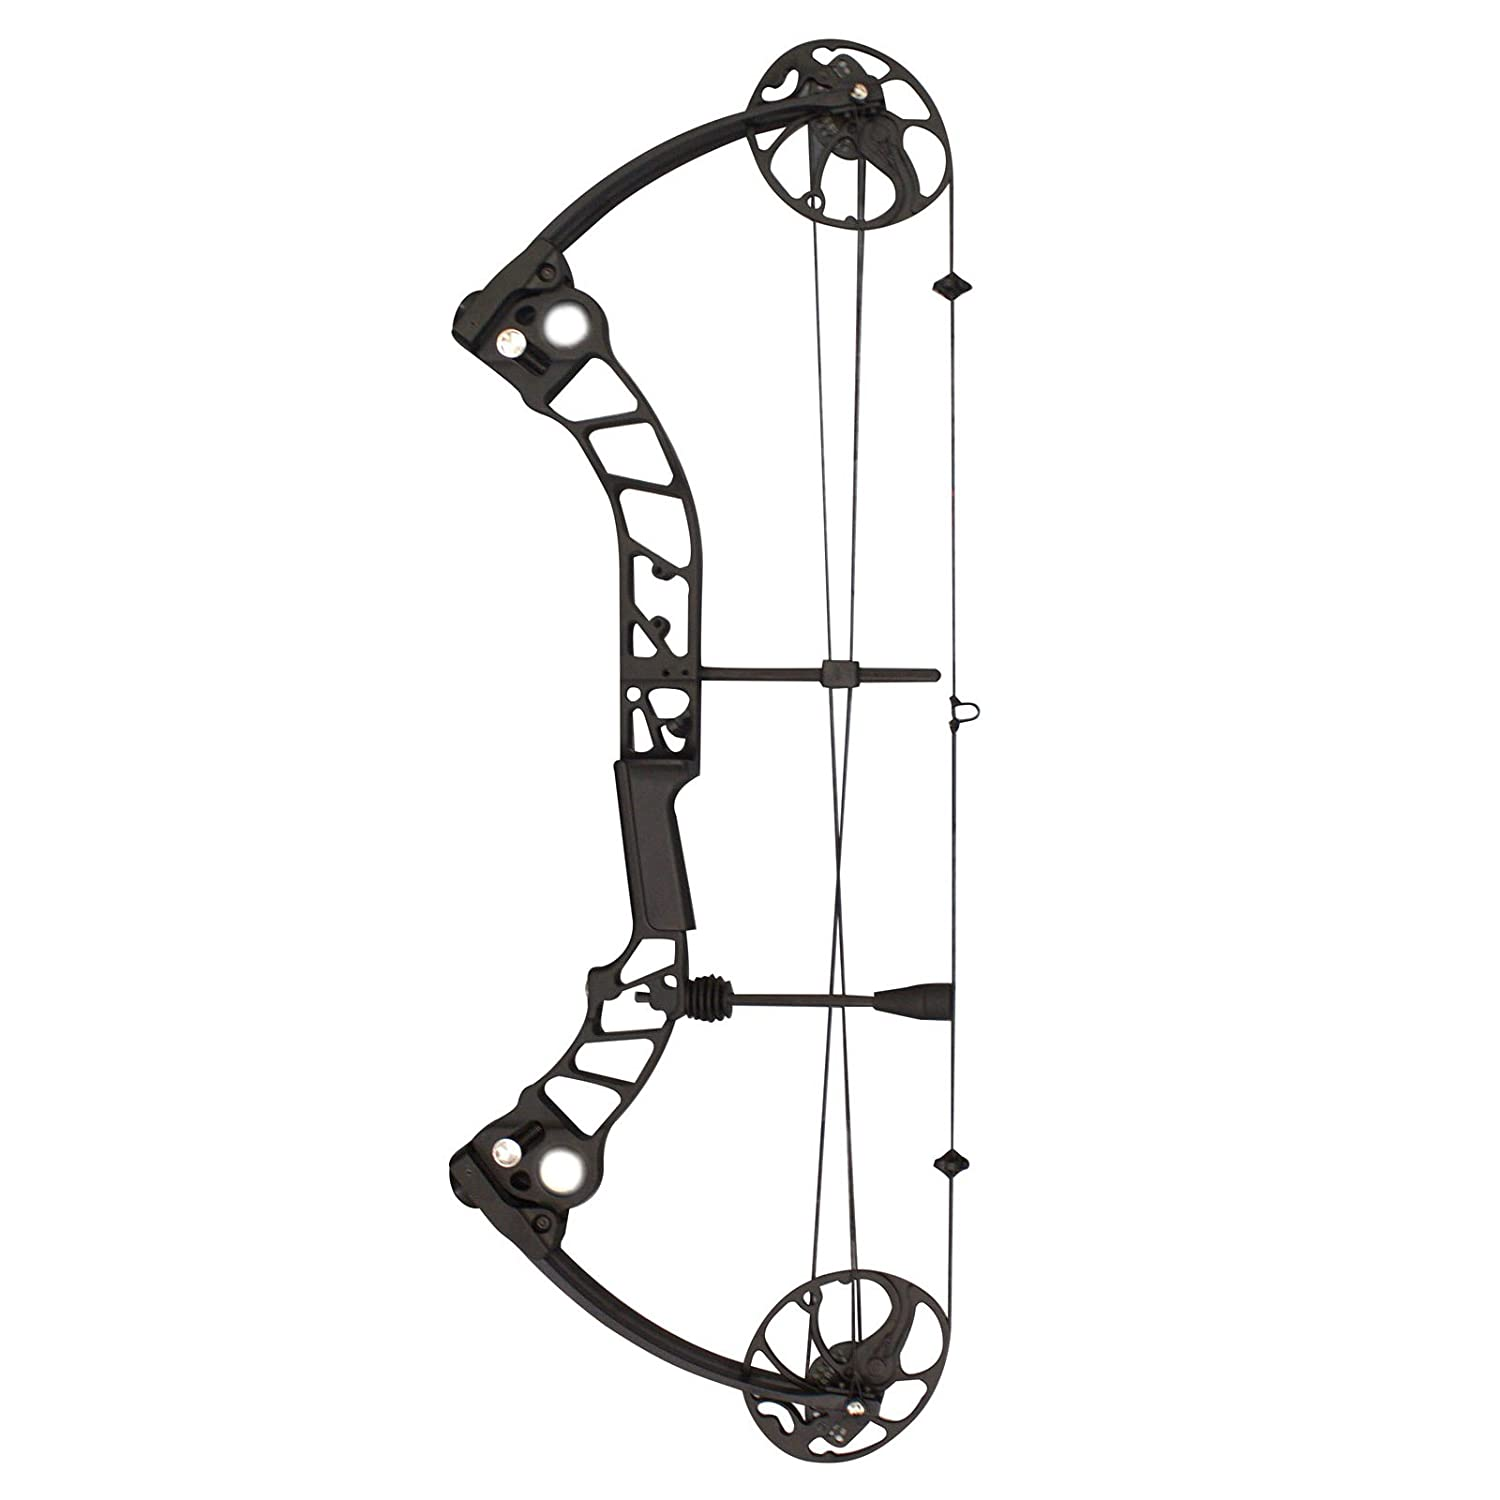 Southland Archery Supply SAS Destroyer Black Aluminum 70-Pound 32-inch Hunting Bow